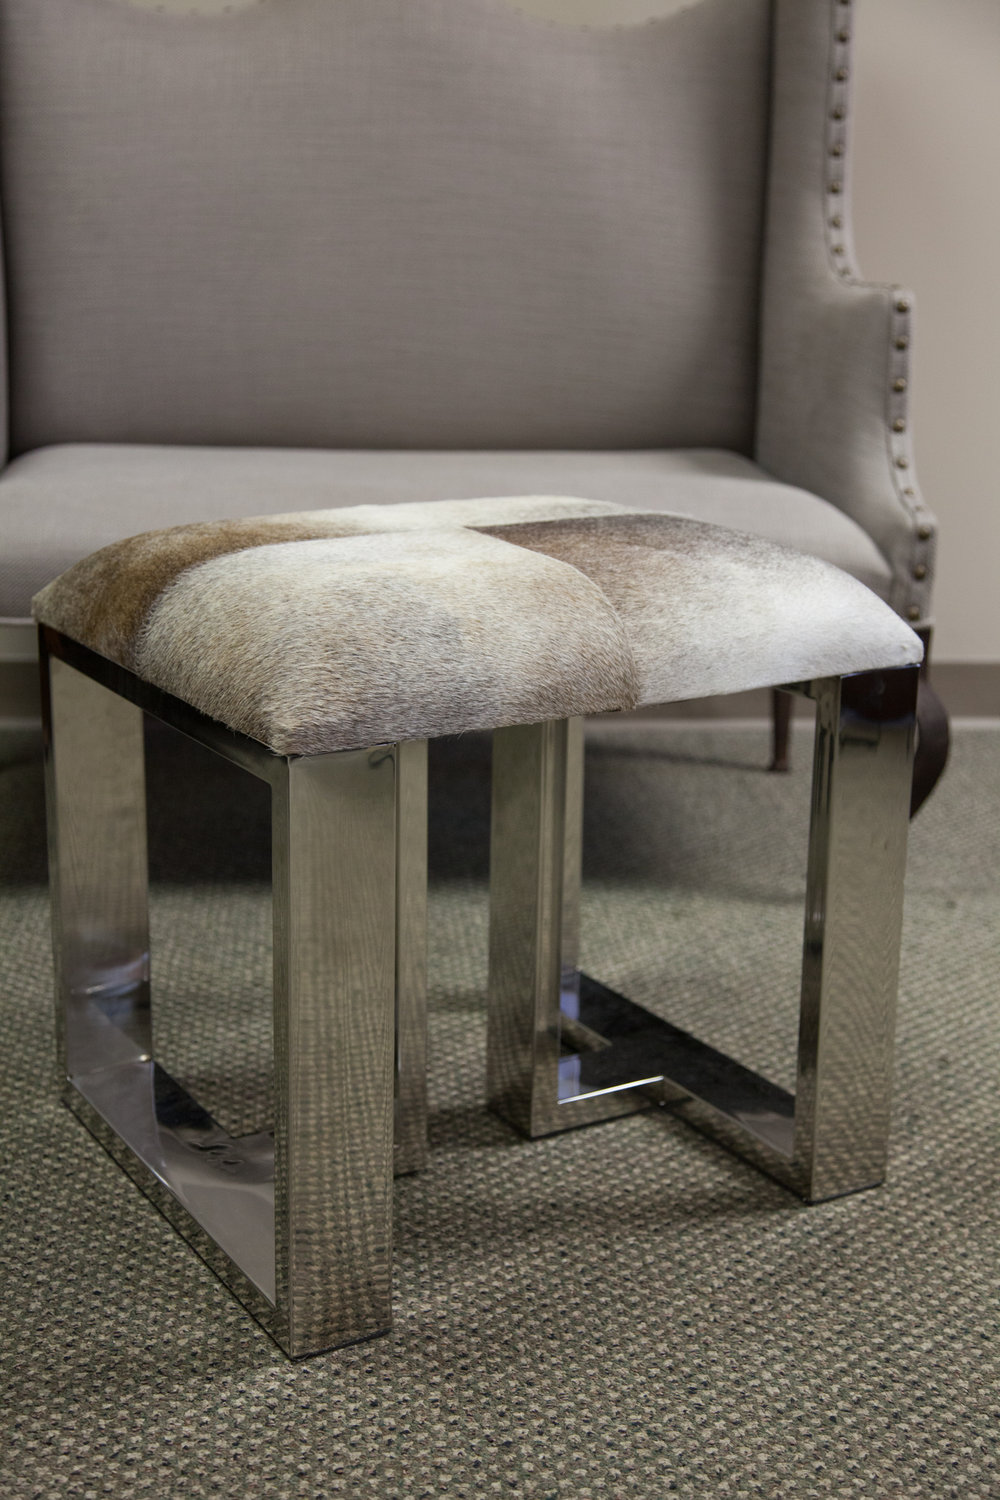 Calf hair stool with shiny mirror finish   Donated by: Friends of DMH Foundatio